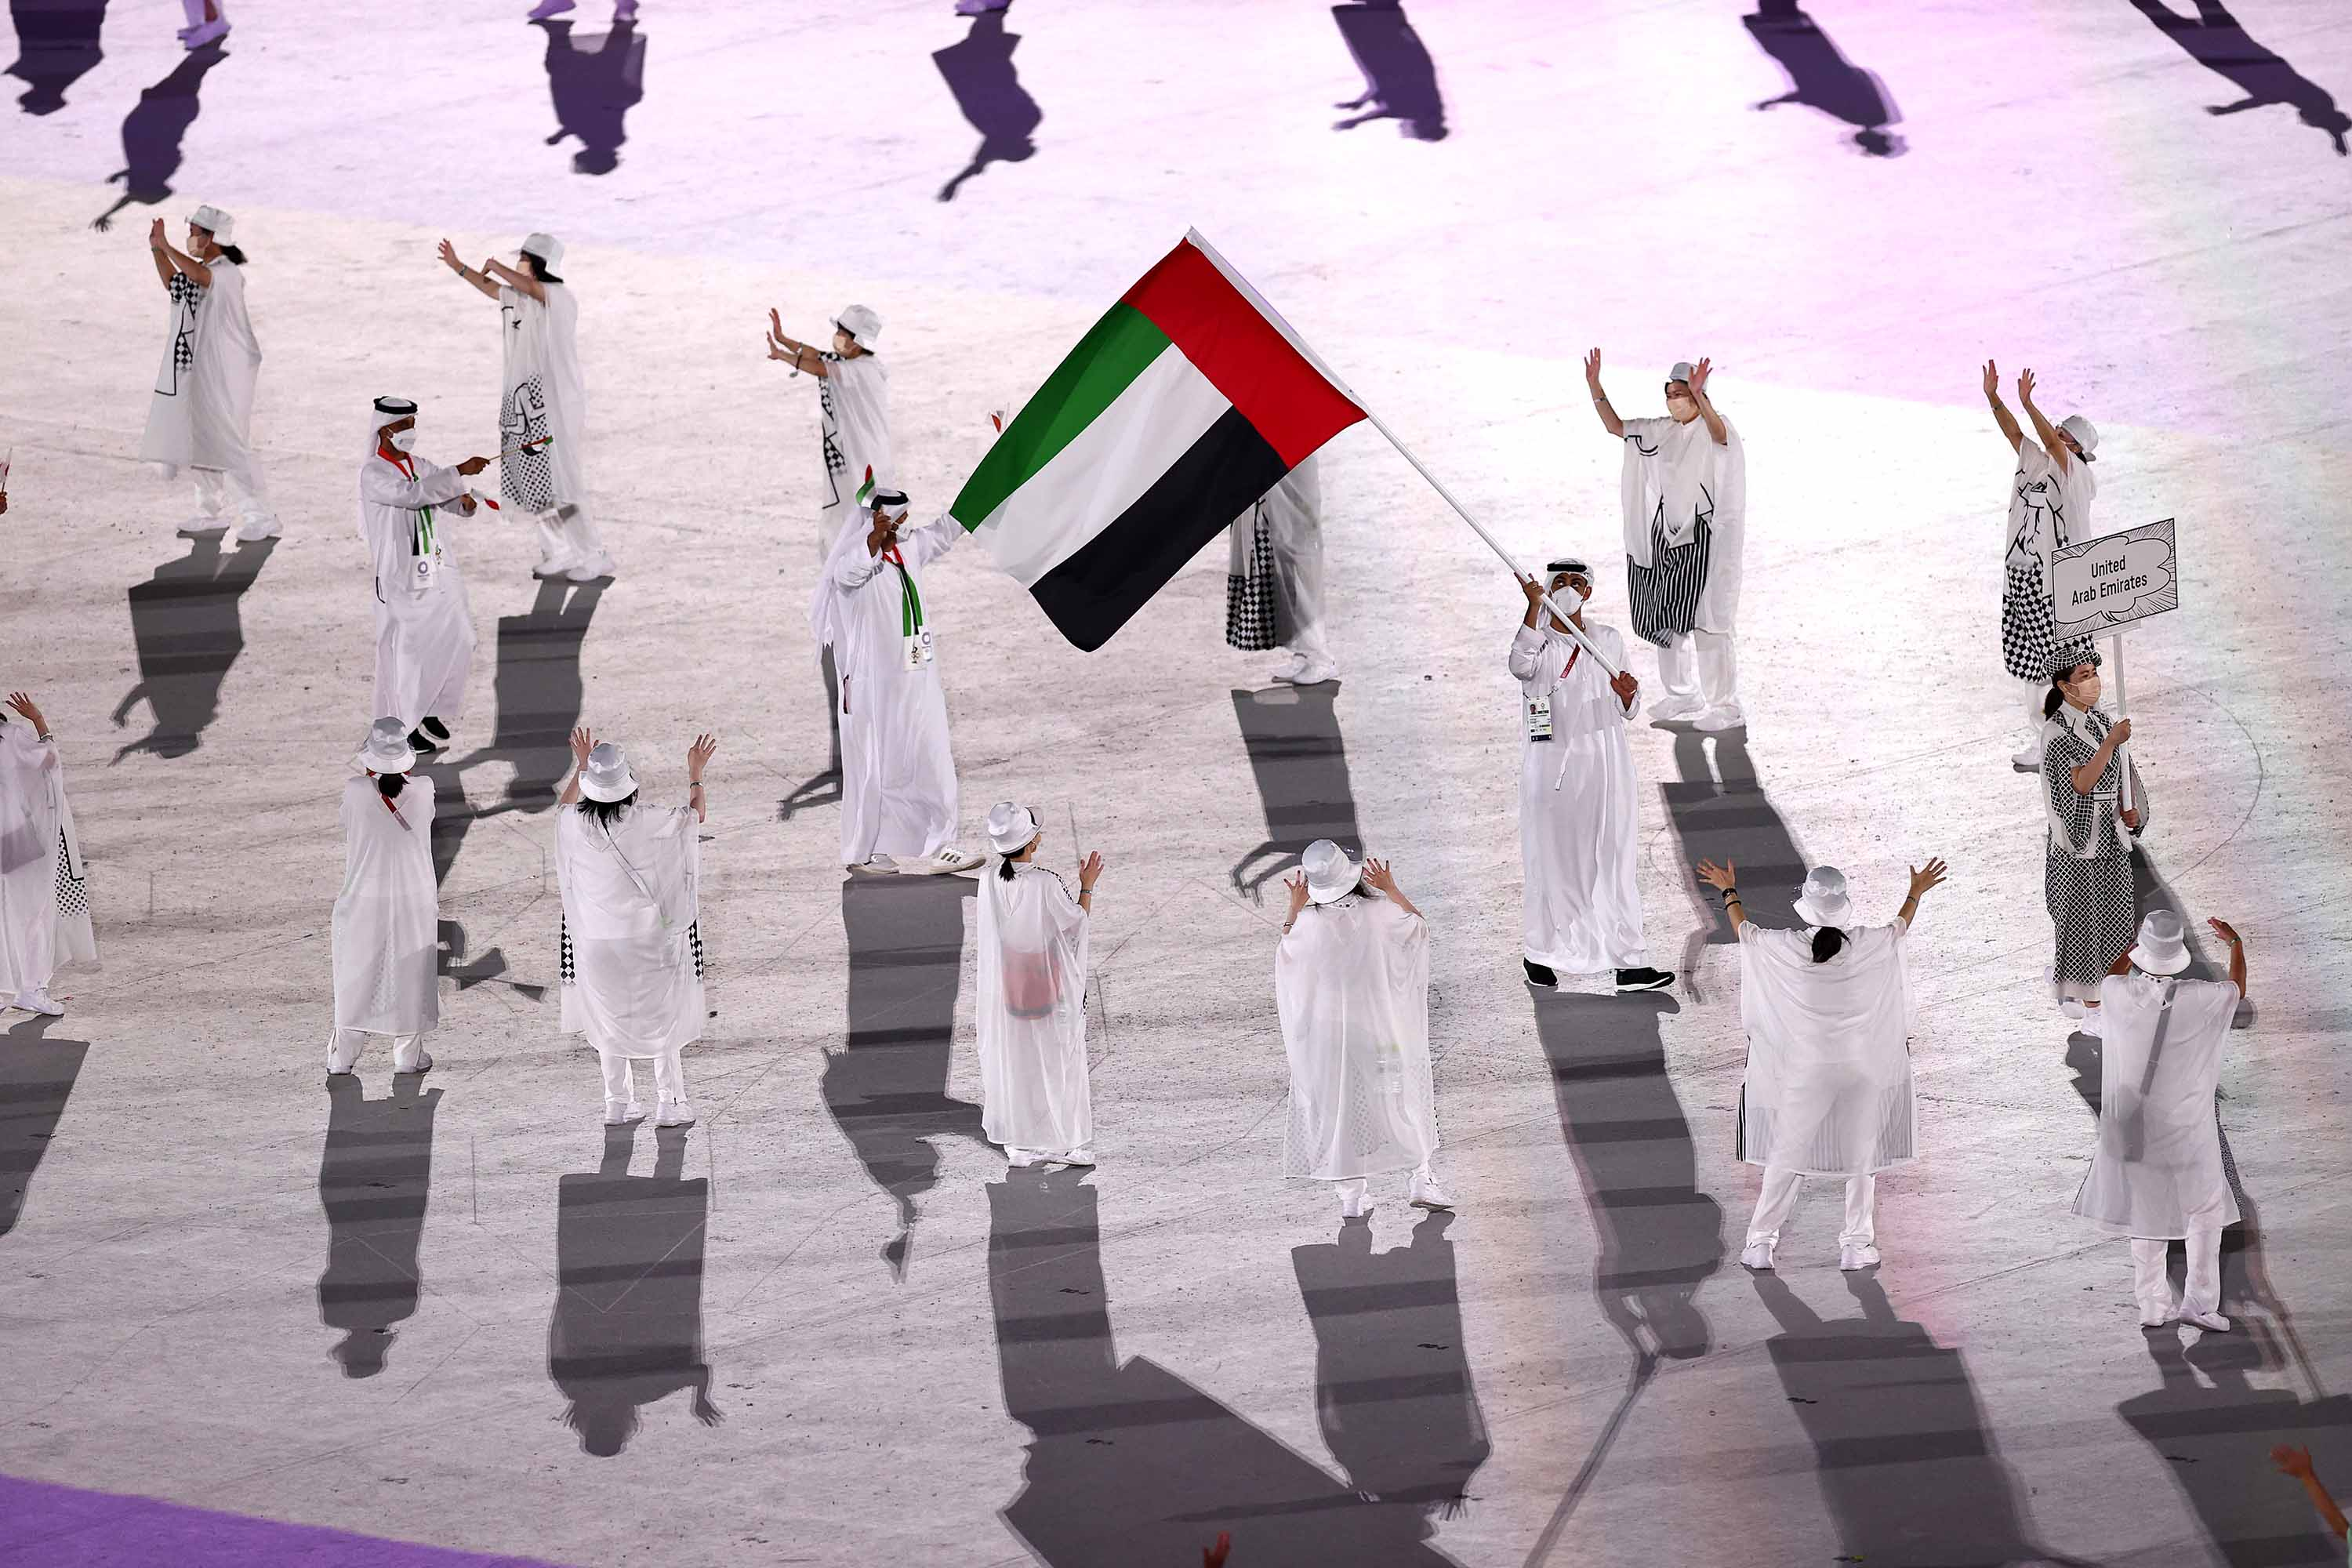 TOKYO, JAPAN - JULY 23: Flag bearer Yousuf Almatrooshi of Team United Arab Emirates during the Opening Ceremony of the Tokyo 2020 Olympic Games at Olympic Stadium on July 23, 2021 in Tokyo, Japan. (Photo by Maja Hitij/Getty Images)